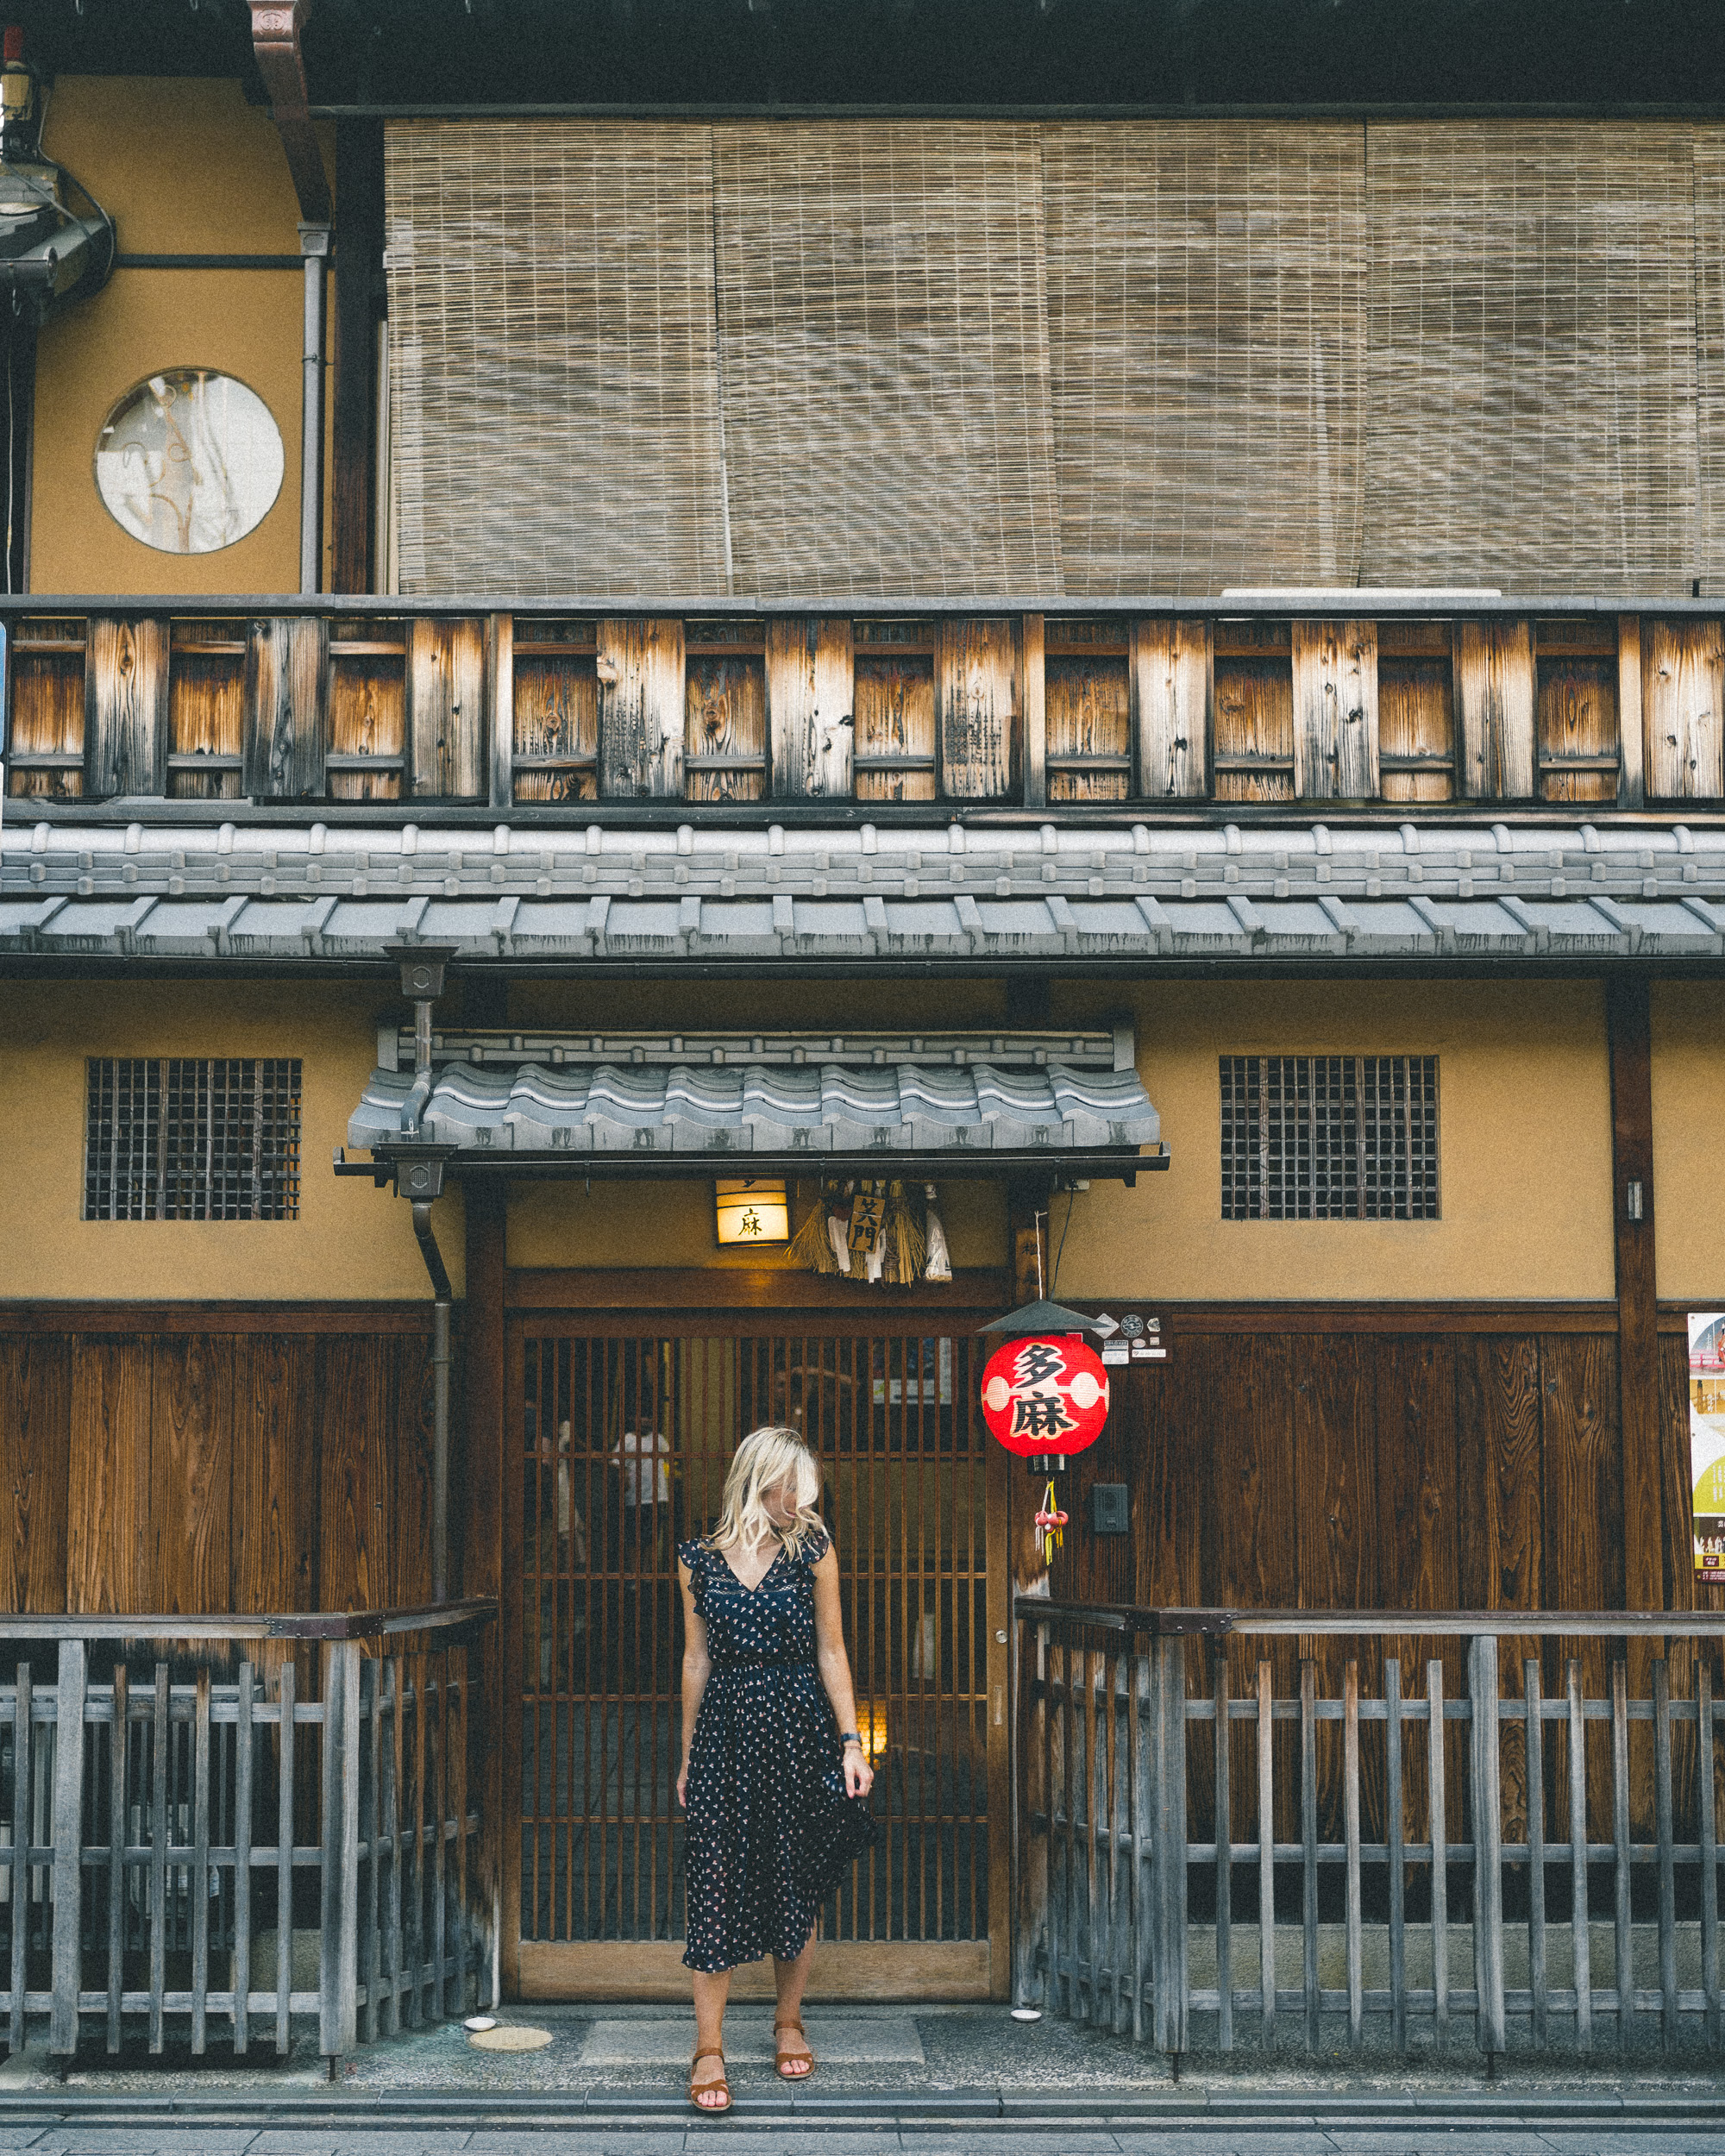 Gion geisha district in Kyoto, Japan | 24 Hour Guide to Kyoto, Japan | 1 Day Guide Kyoto | Kyoto City Guide | Kyoto Travel Itinerary